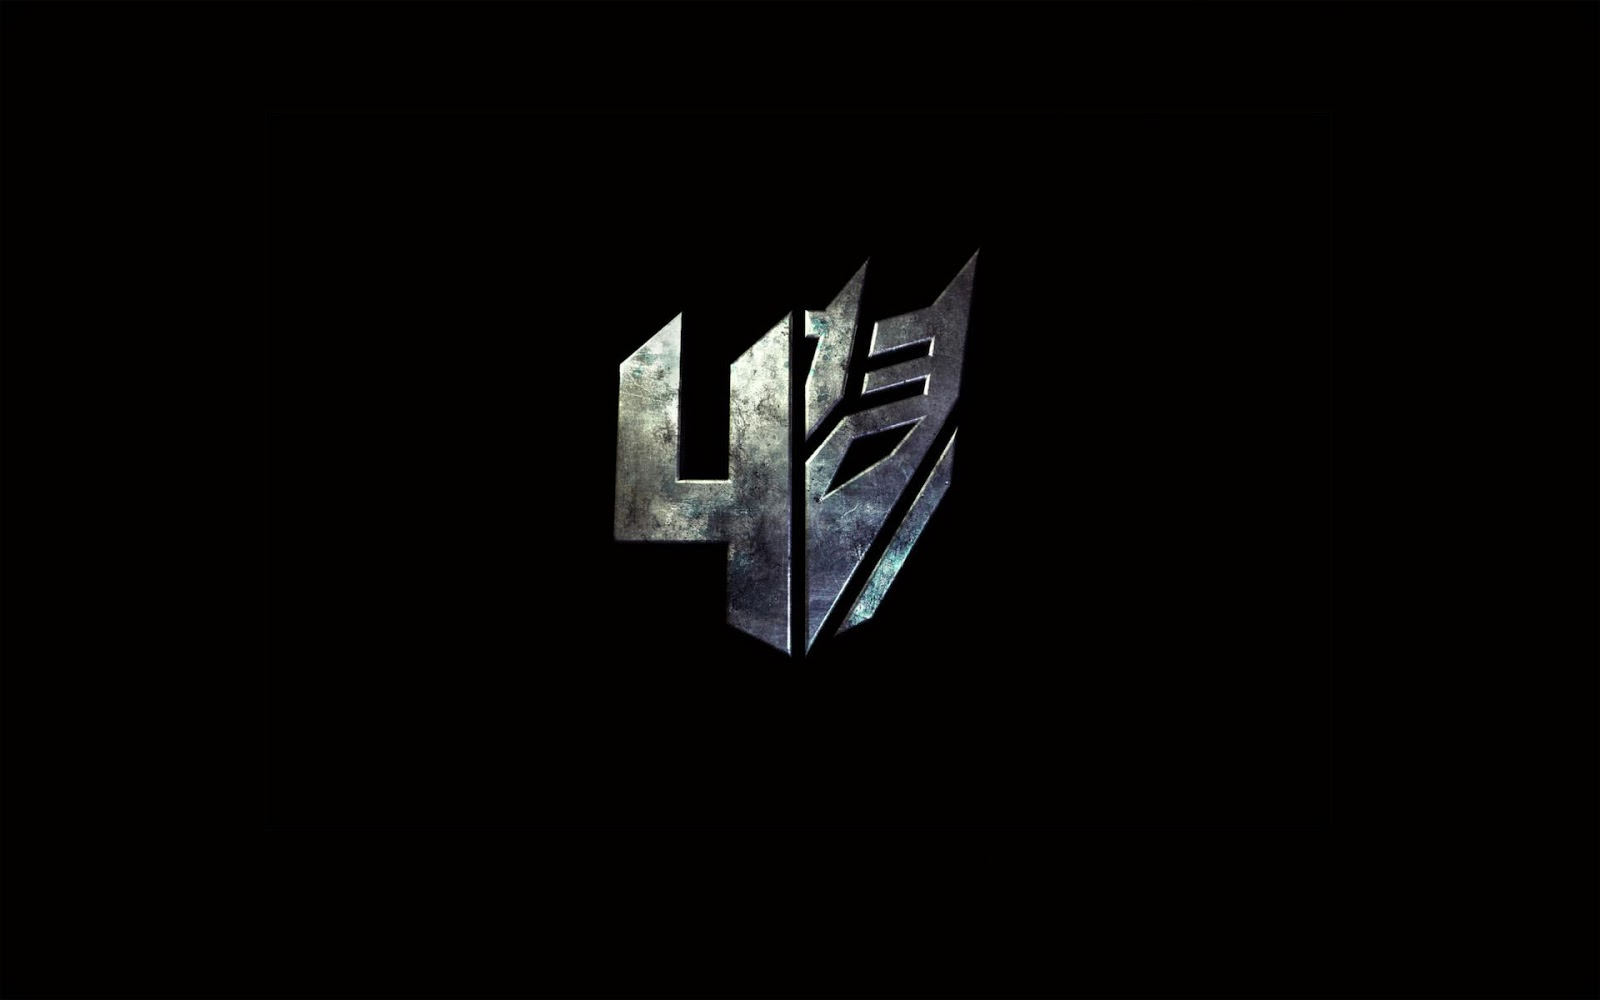 Decepticon Transformers 4 Age of Extinction 6o Wallpaper HD